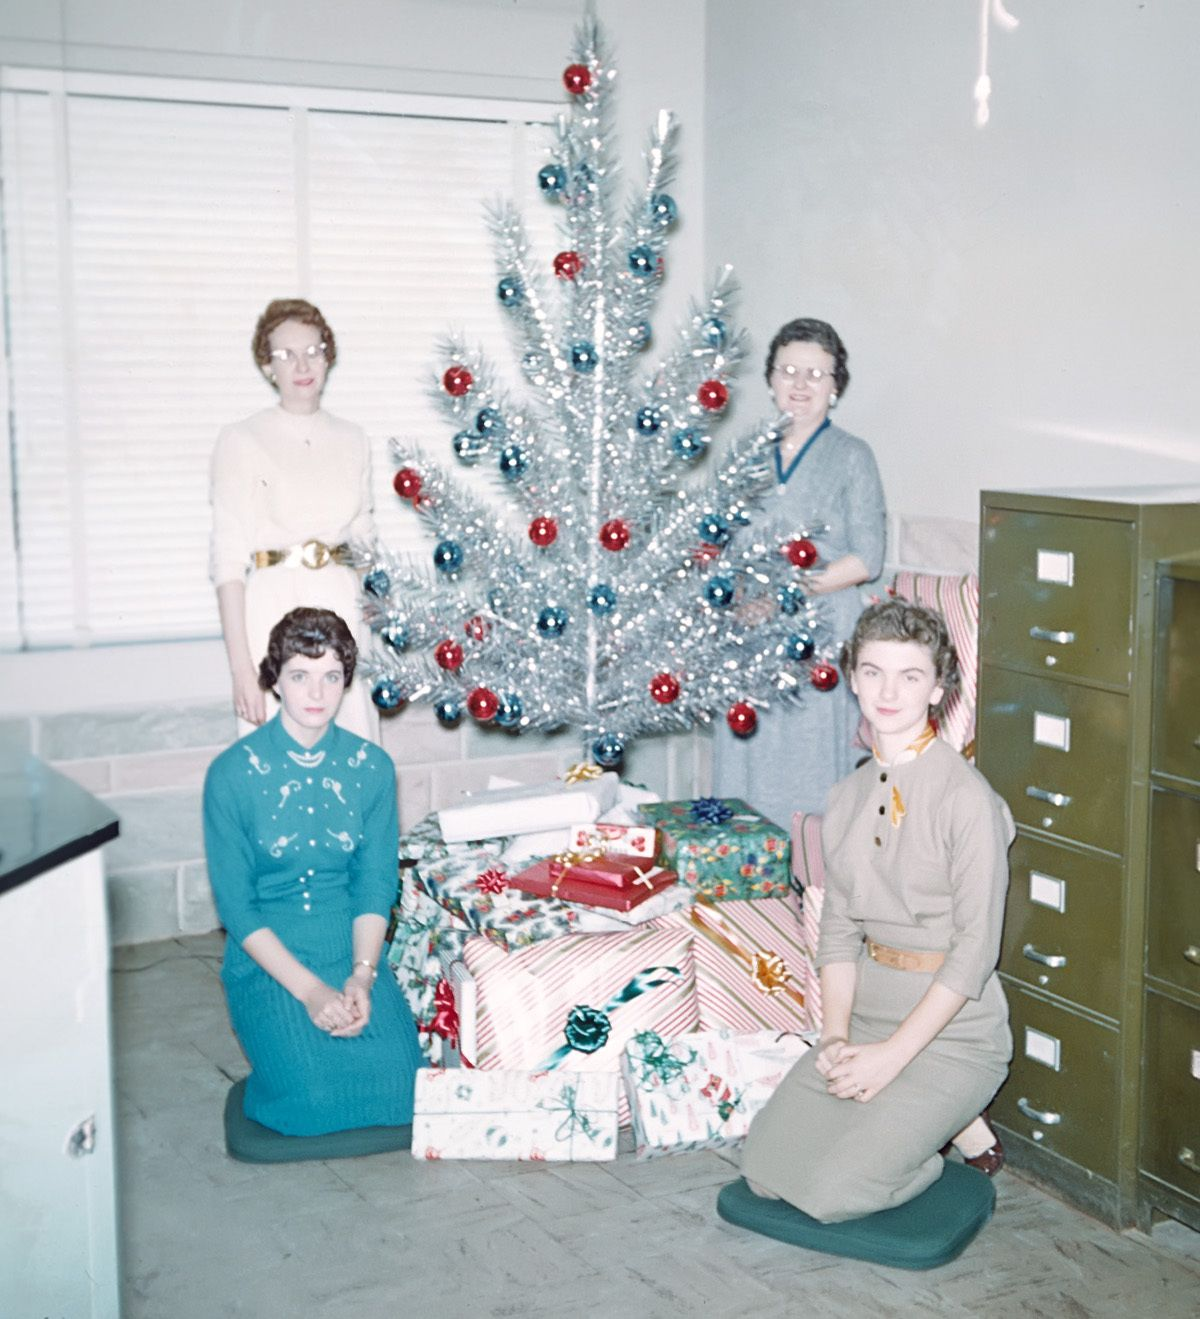 silver christmas tree kodacolor 50s....I think they used a ruler to place those ornaments!